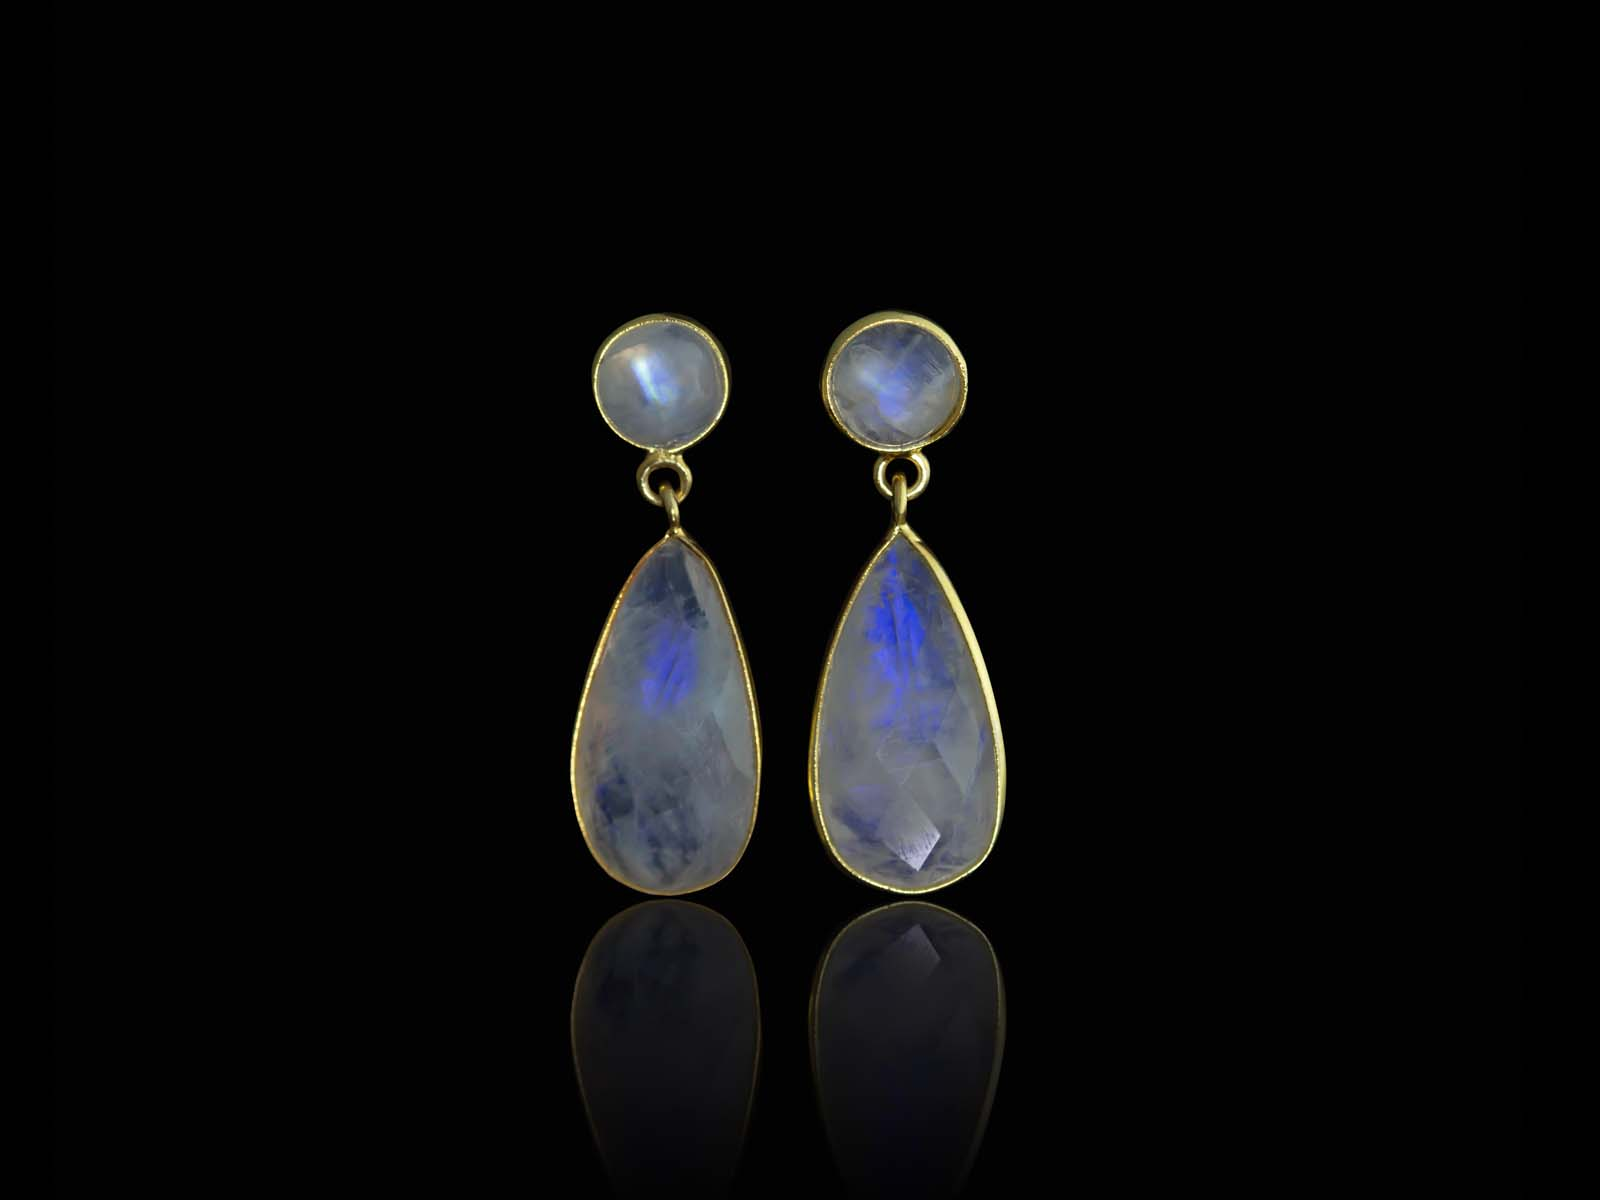 Double Rainbow Moonstone Gold Earrings Dangly Dropshaped